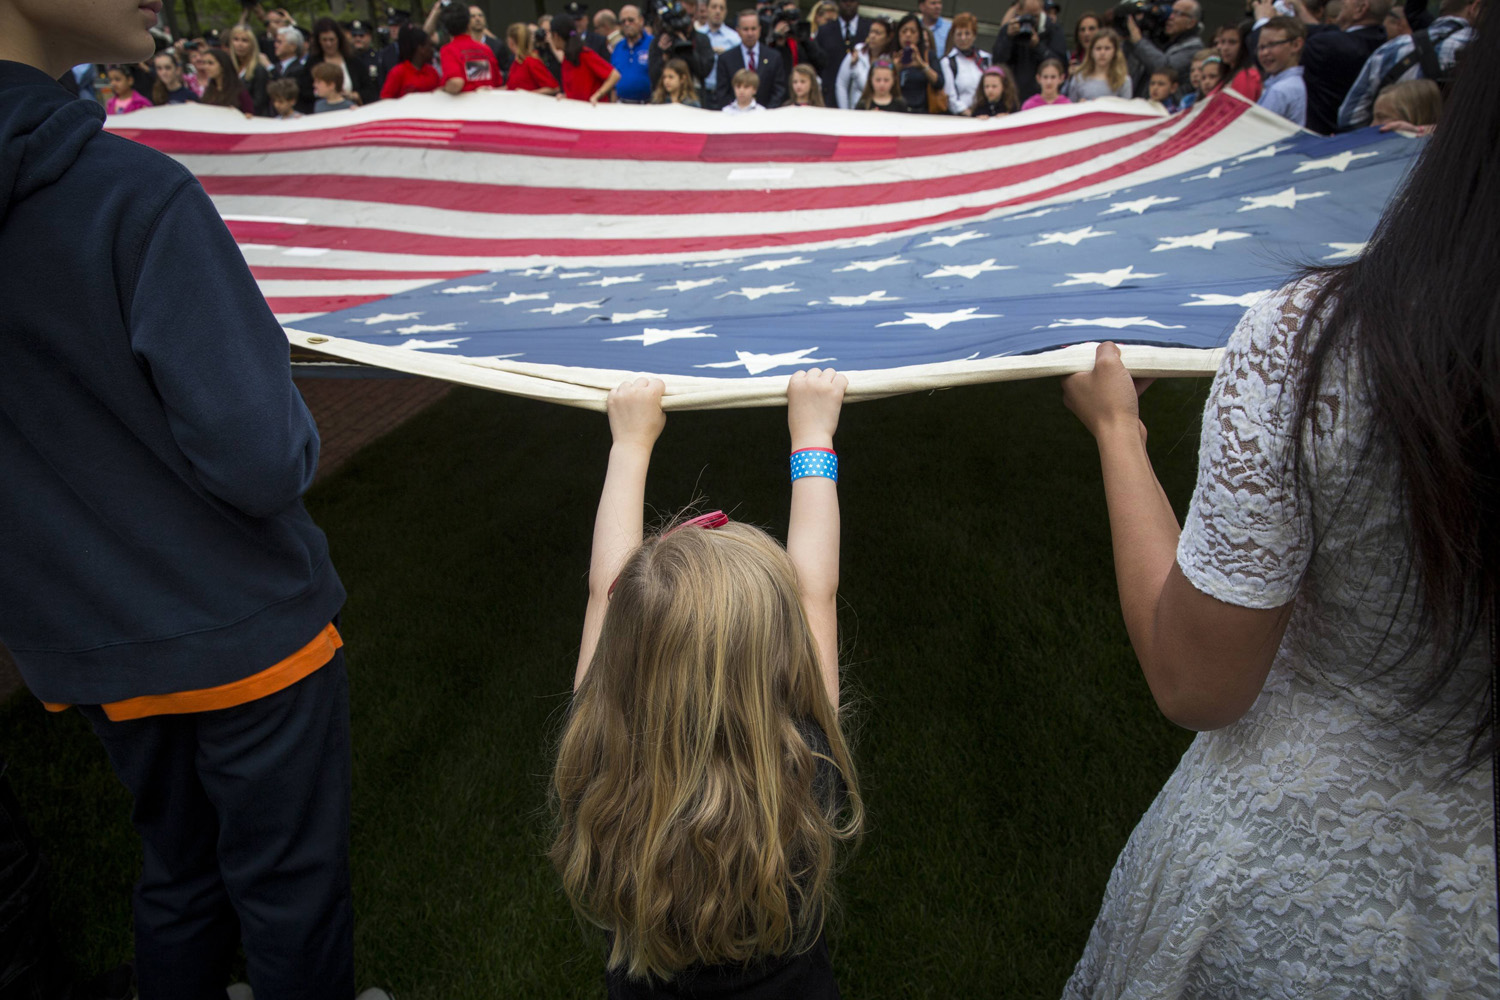 May 21, 2014. A girl designated to assist with transferring the National 9/11 Flag, donated by New York Says Thank You Foundation, holds it aloft on the grounds of the 9/11 Memorial Plaza before donating it to the National September 11 Memorial Museum in New York.